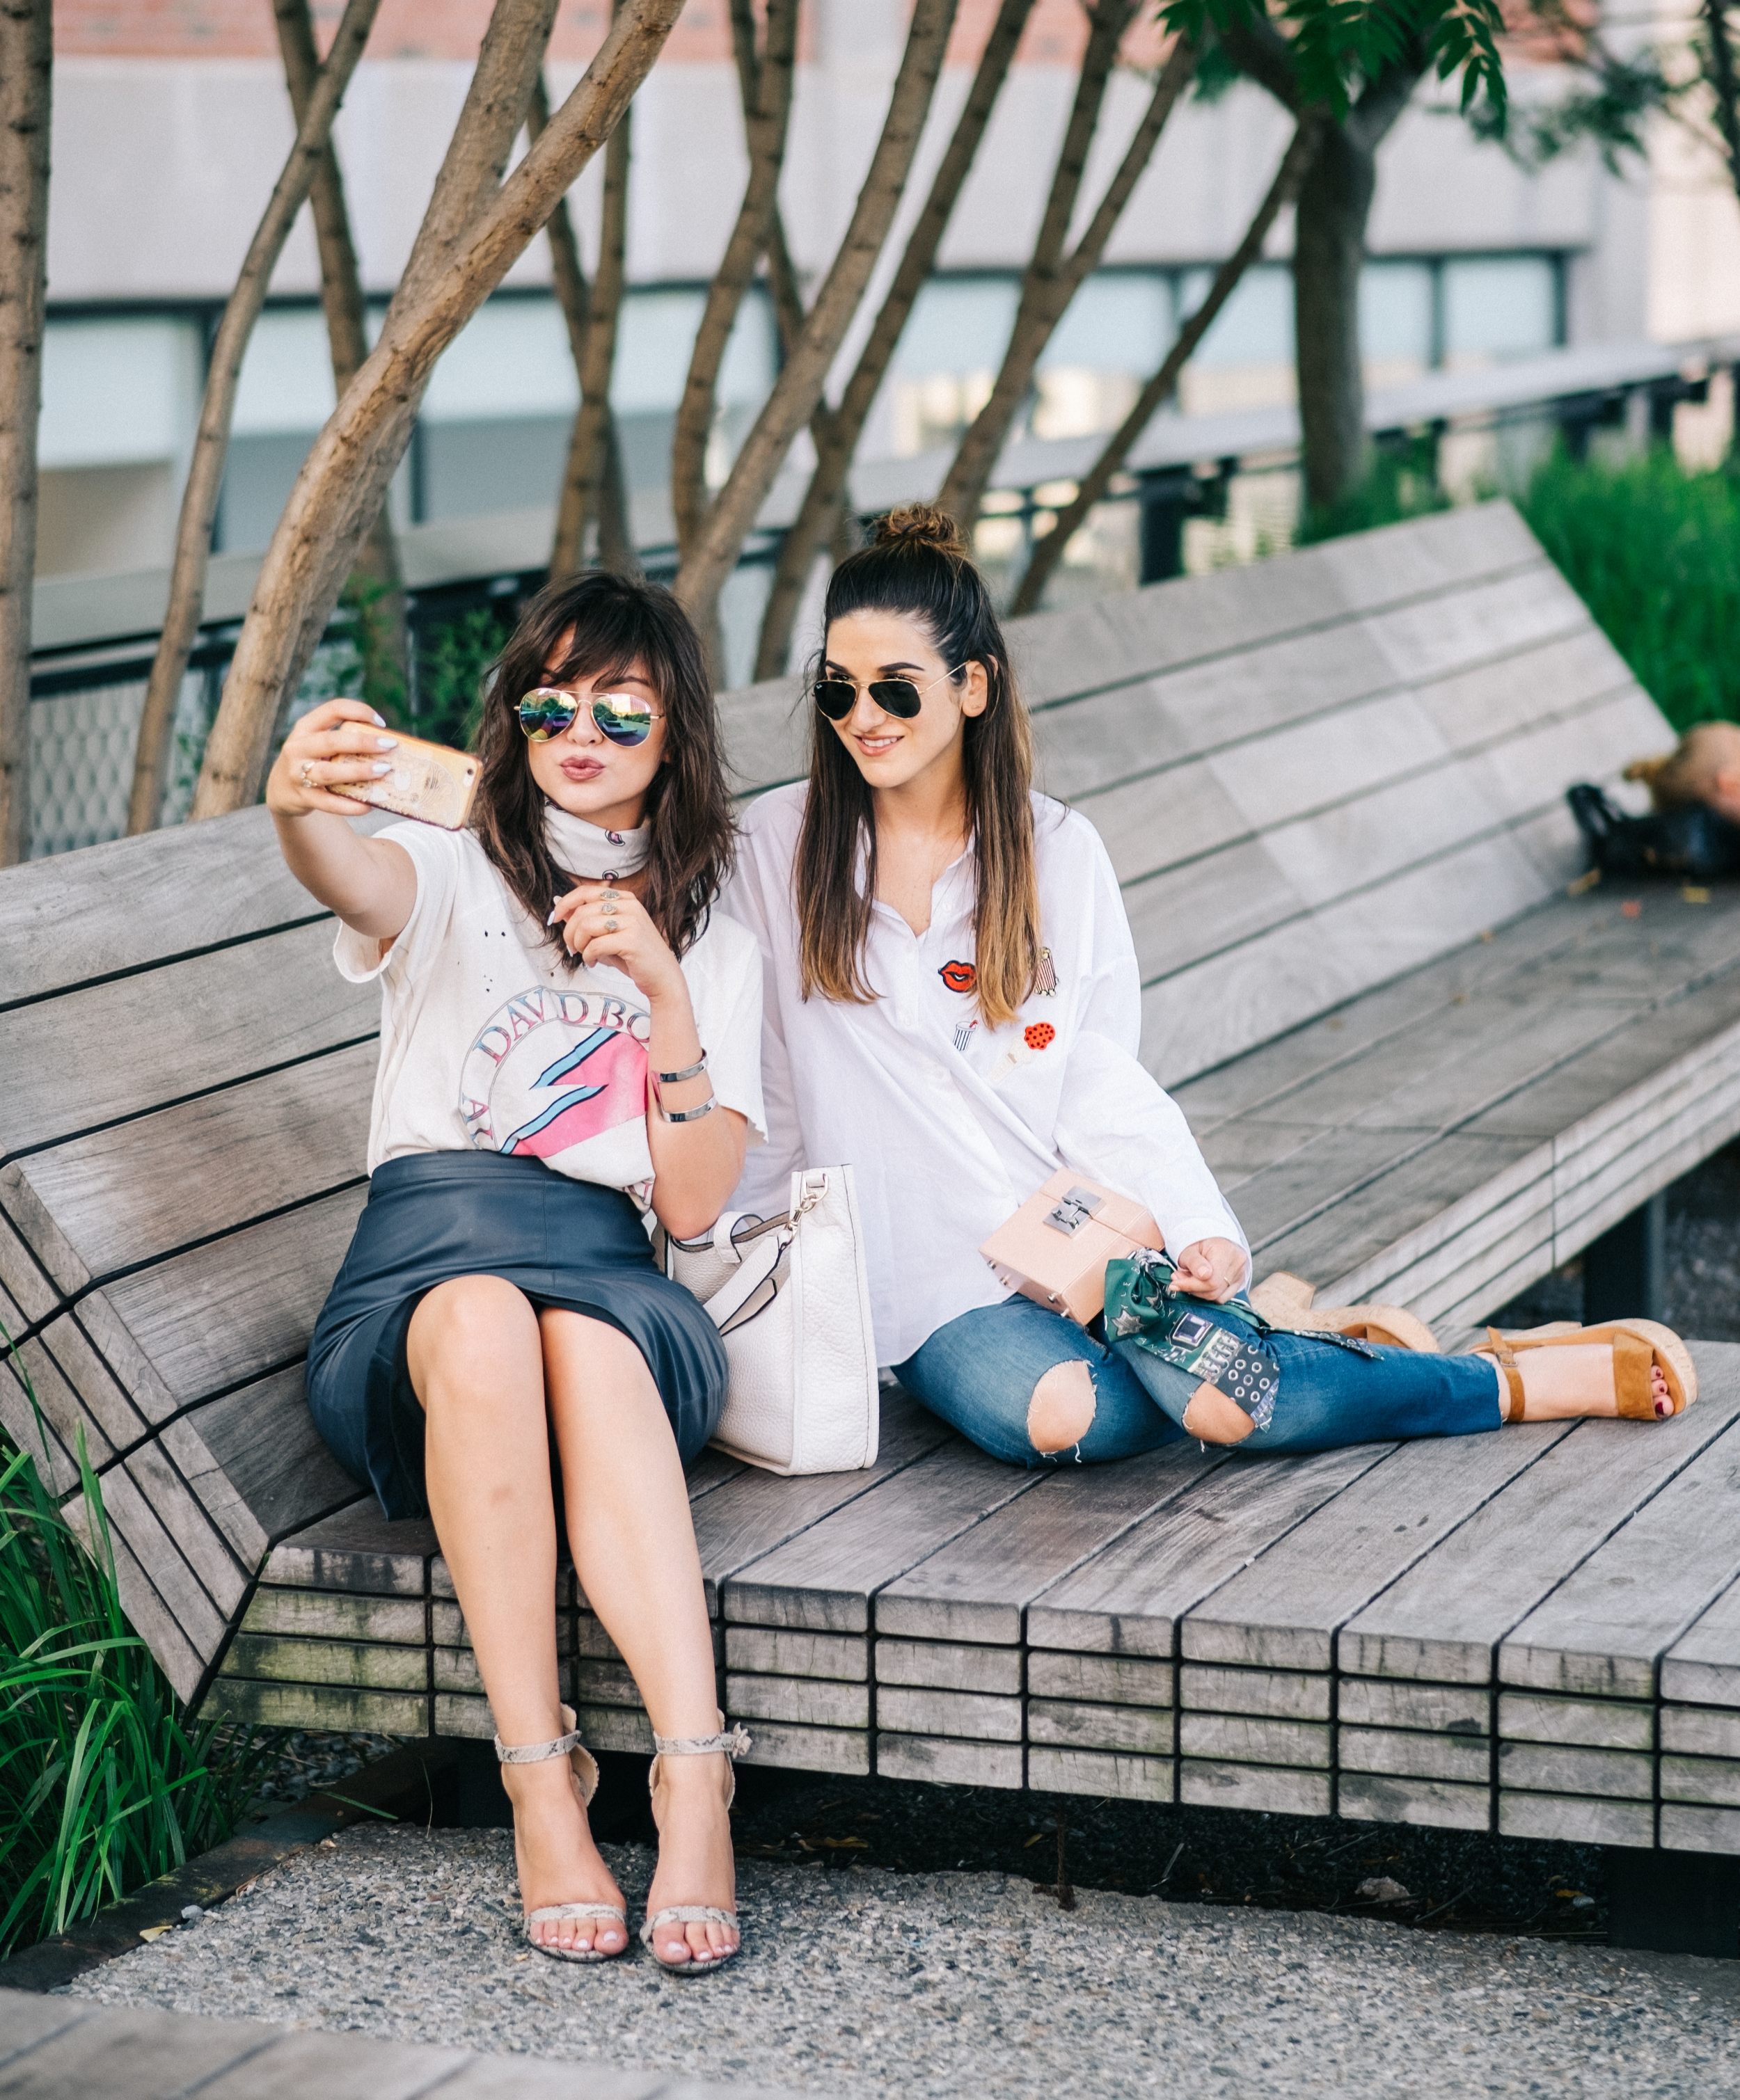 Photoshoot Collab With Lexicon Of Style How To Make Blogger Friends Louboutins & Love Fashion Blog Esther Santer NYC Street Style Blogger Outfit OOTD Trendy Oversized White Dress Shirt Patches Ripped Denim Jeans Scarf Heels Wedges Zara Sunglasses Bag.jpg